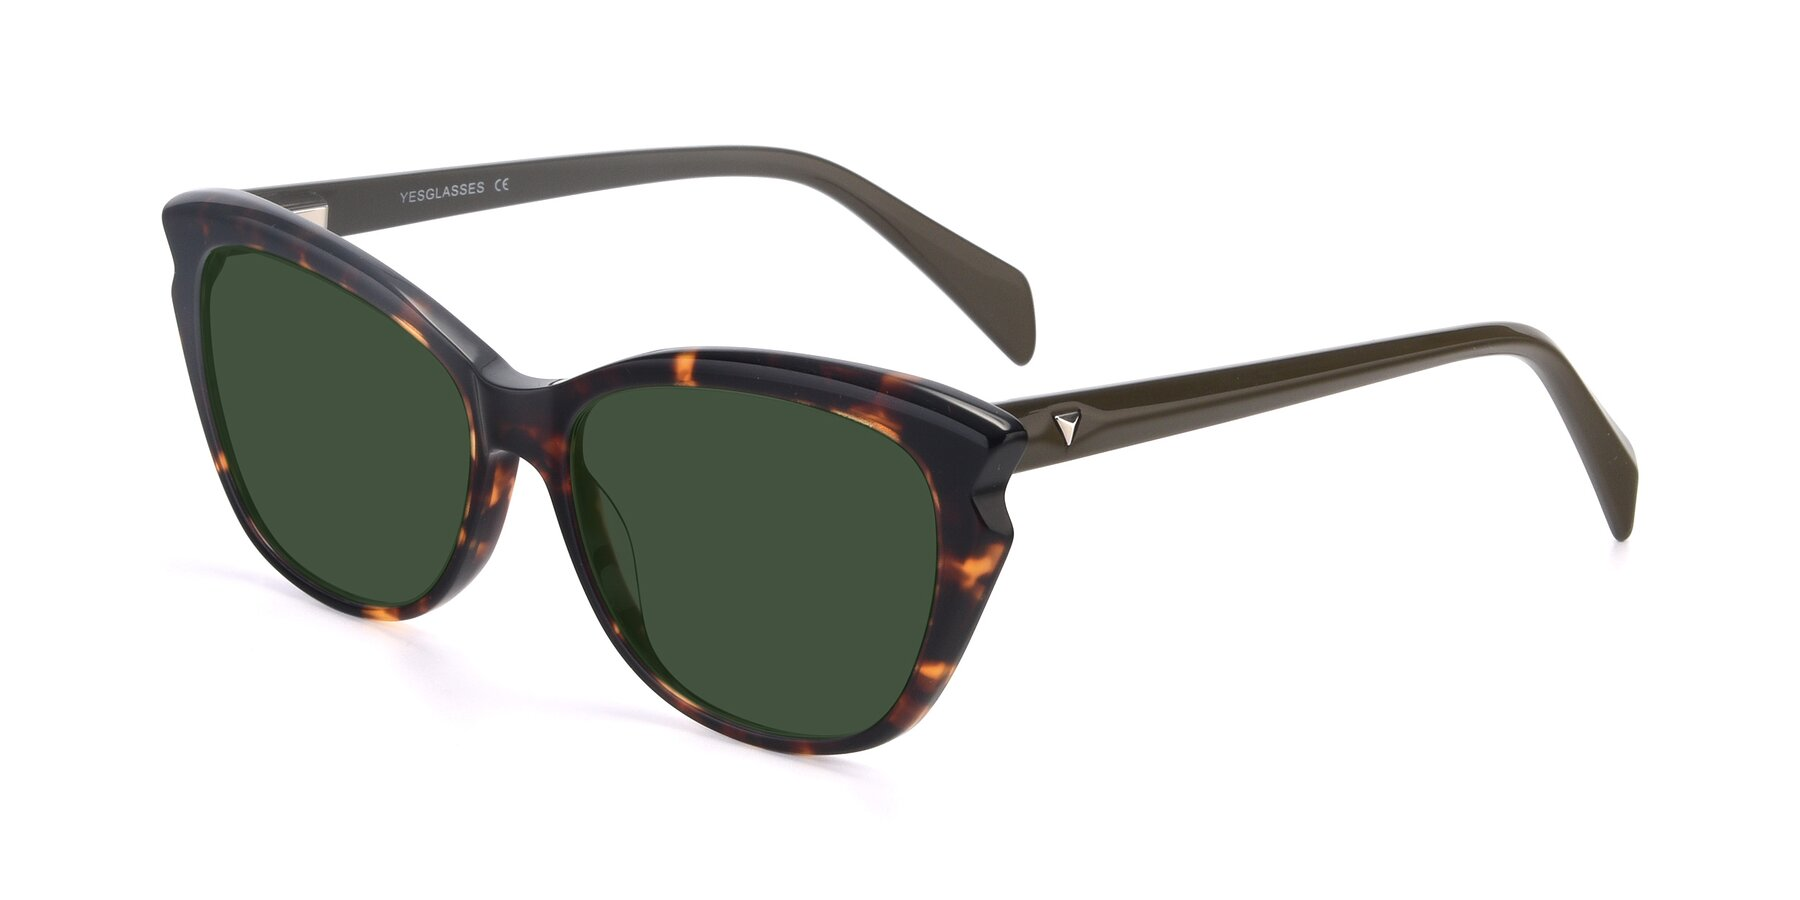 Angle of 17629 in Tortoise with Green Tinted Lenses